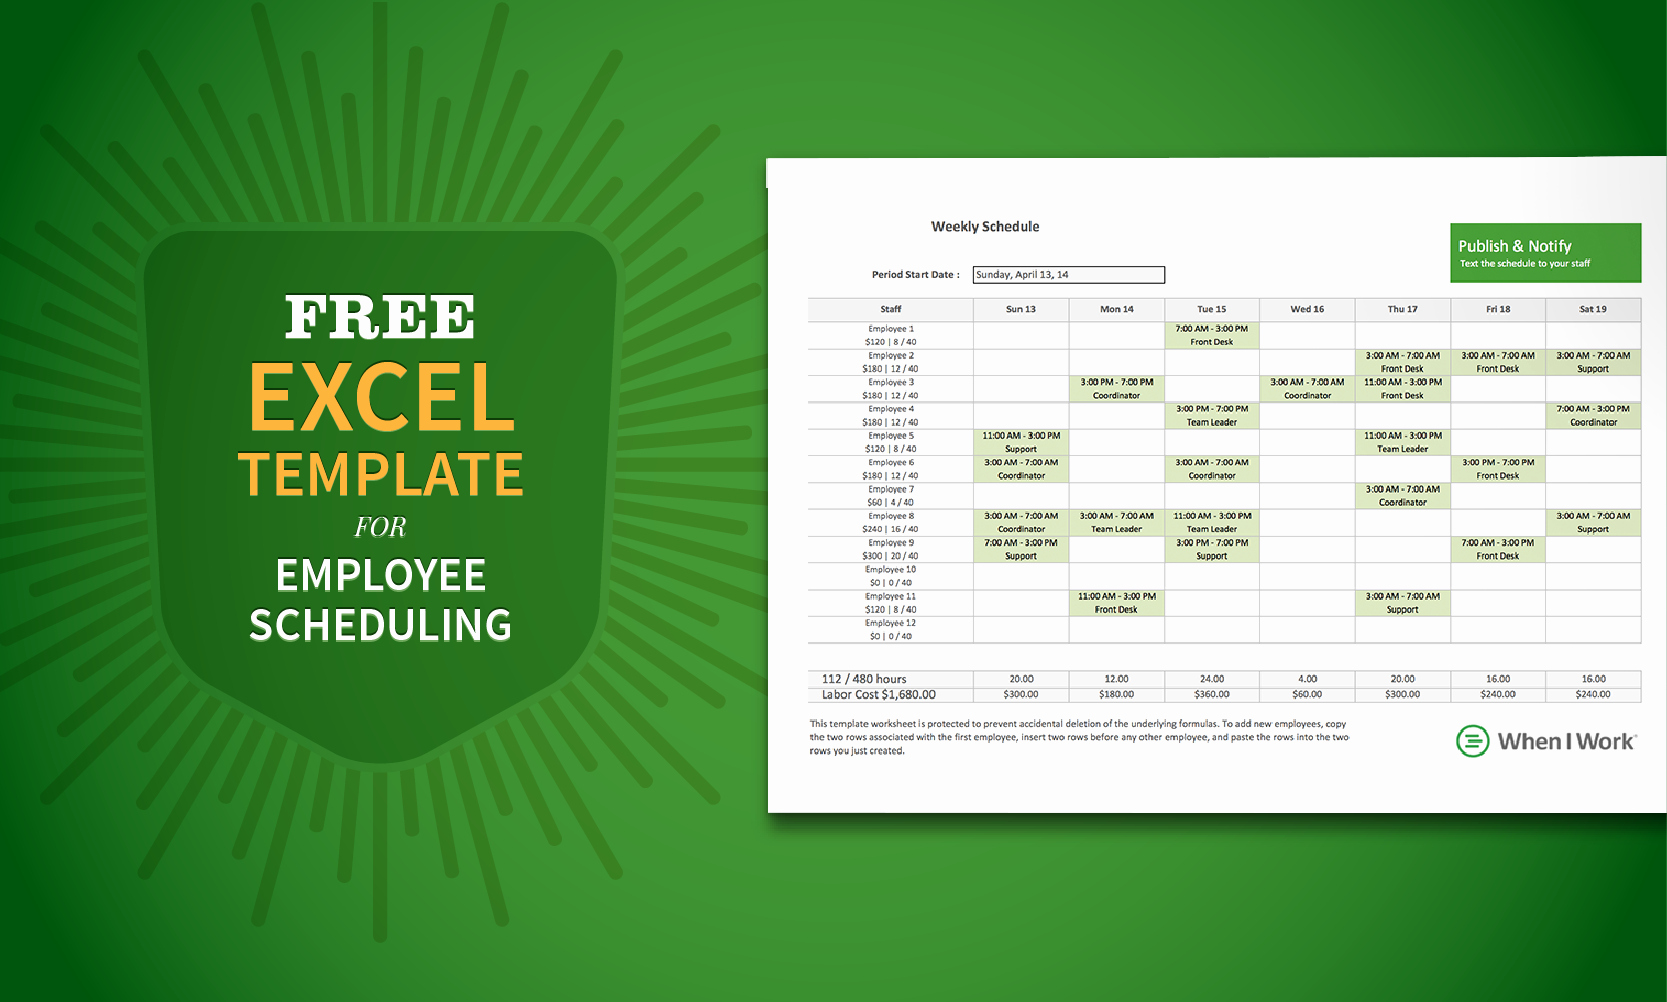 Free Employee Schedule Template Luxury Free Excel Template for Employee Scheduling